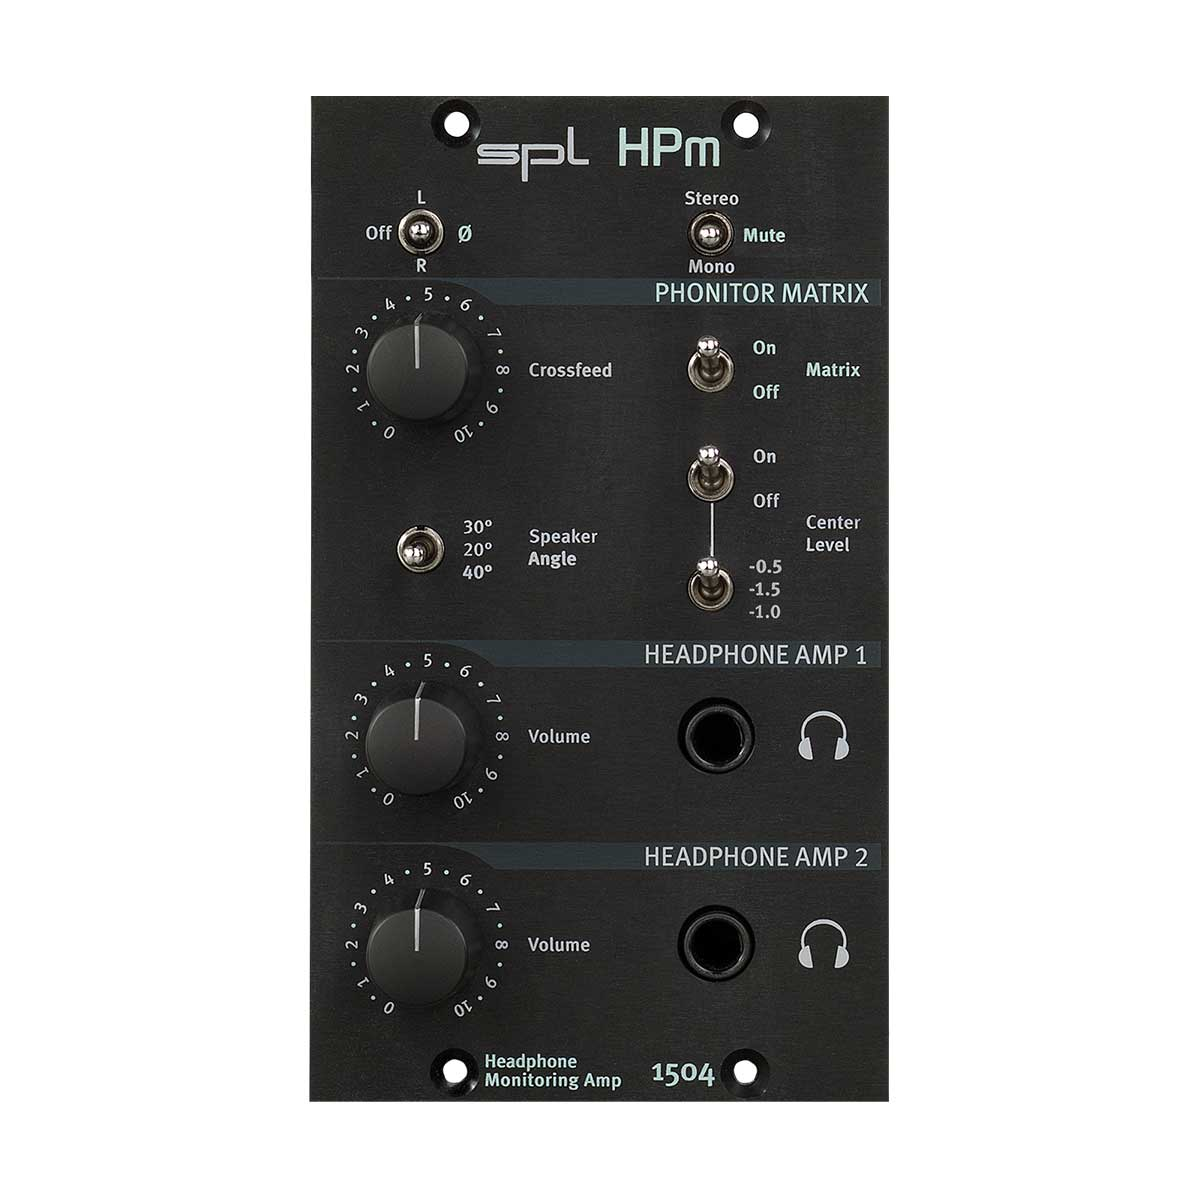 SPL HPm 500-series Headphone Monitoring Amplifier Front